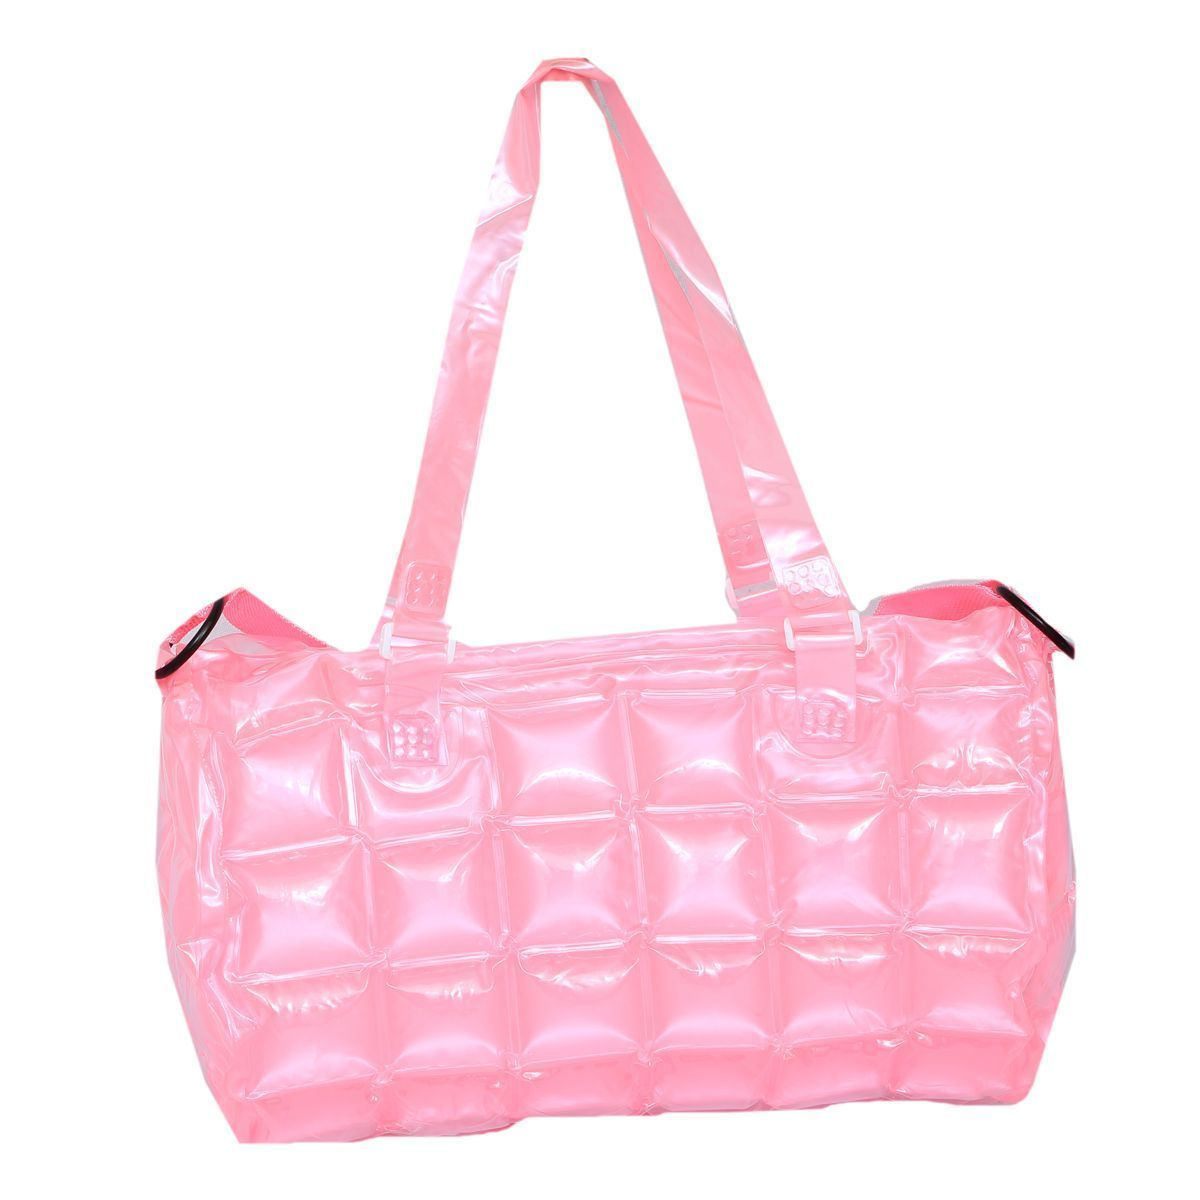 "Kuber Industriesâ""¢ Stylish Shopping Bag,Picnic Bag, Hand Bag in Imported Thick Plastic ,Blow it (Pink) - KI19488"